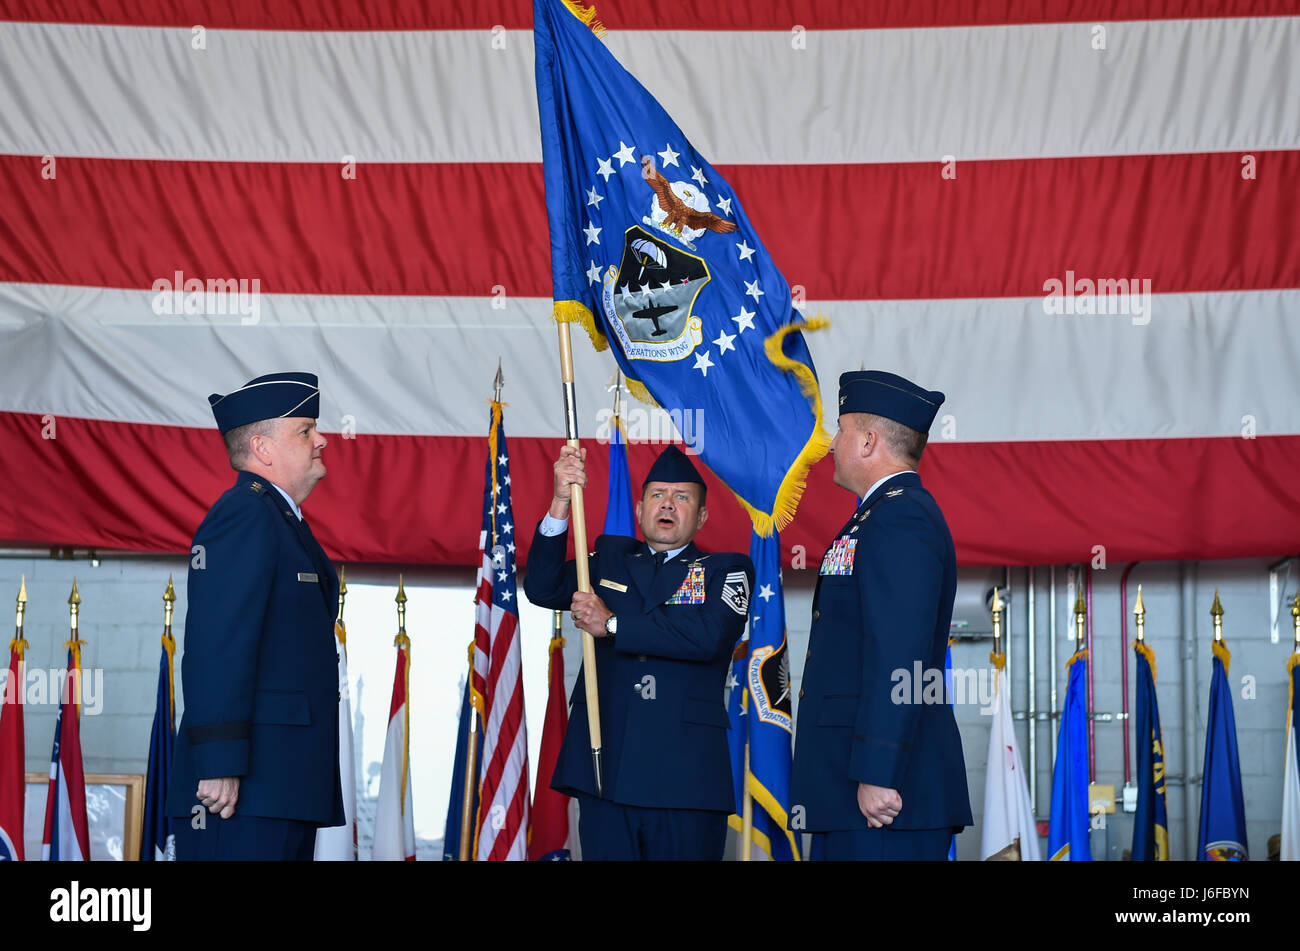 492nd Special Operations Wing